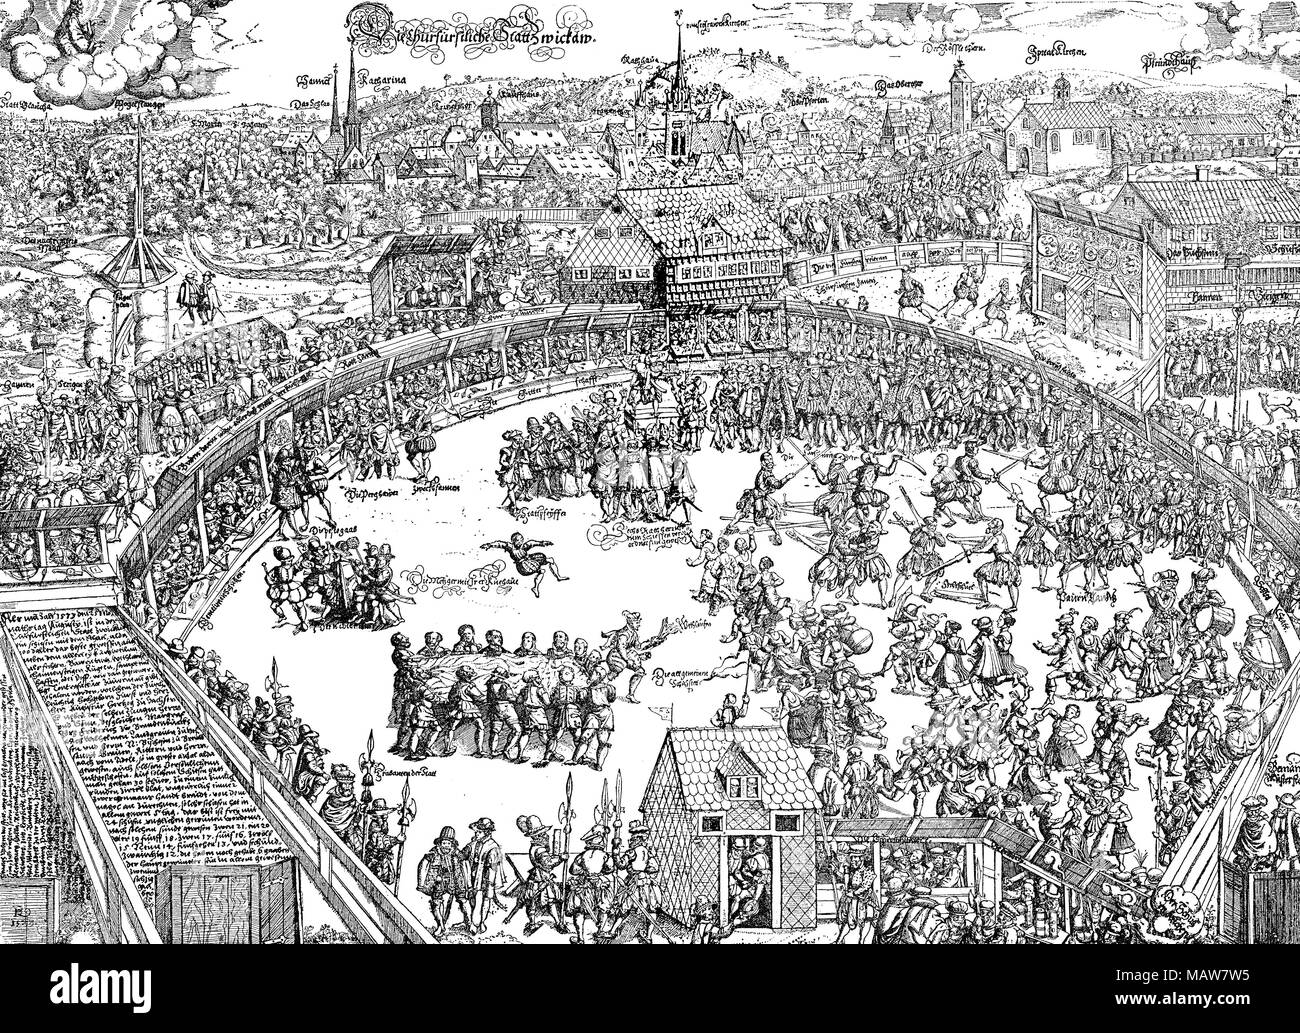 Middle Ages leasure time: the Zwickau shooting festival in 1573, vintage engraving - Stock Image